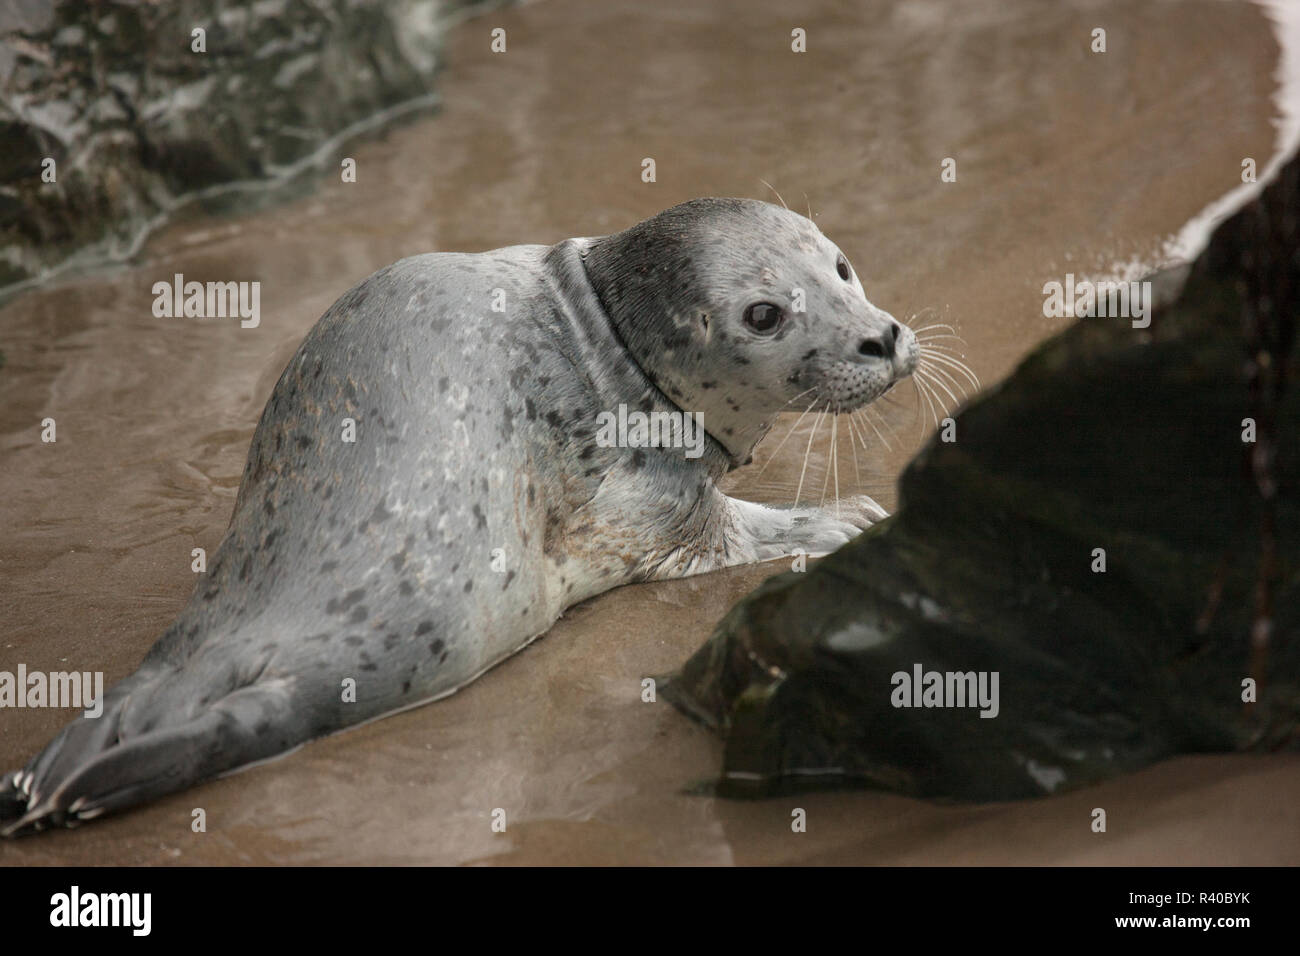 USA, Oregon, Bandon Beach. Lost harbor seal pup on beach. Credit as: Don Grall / Jaynes Gallery / DanitaDelimont. com - Stock Image